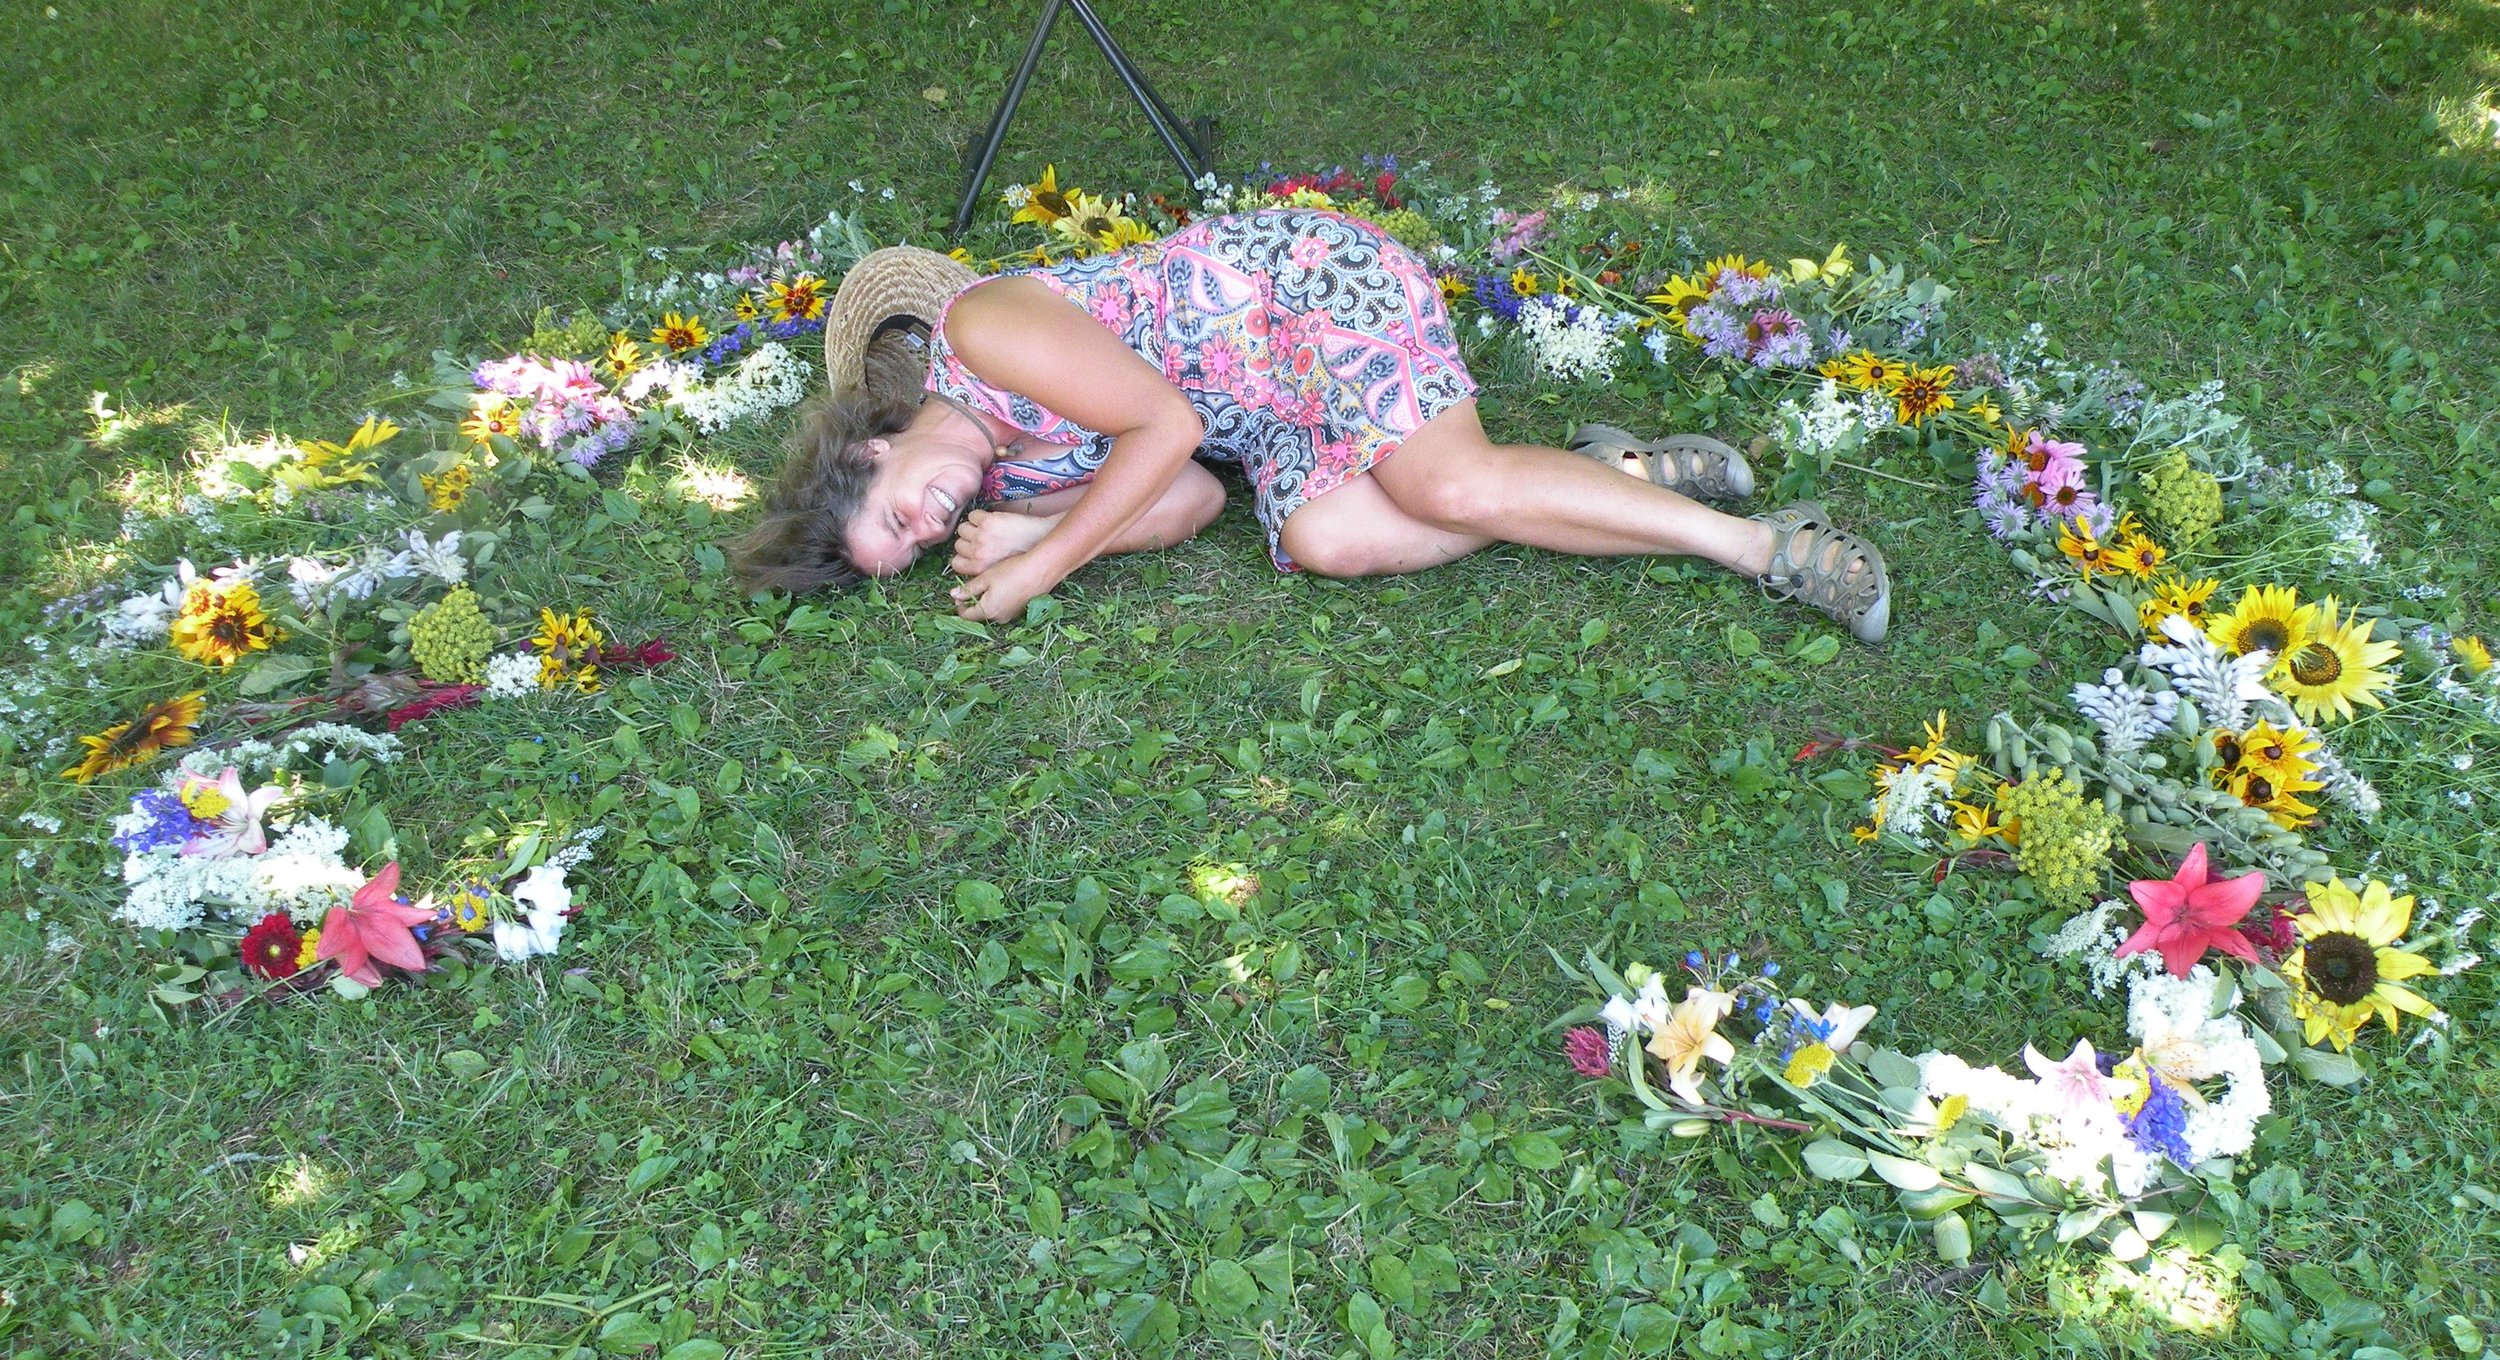 Relaxing after putting the finishing touches on a flower mandala as part of a wedding ceremony. Photo by Rob McClure